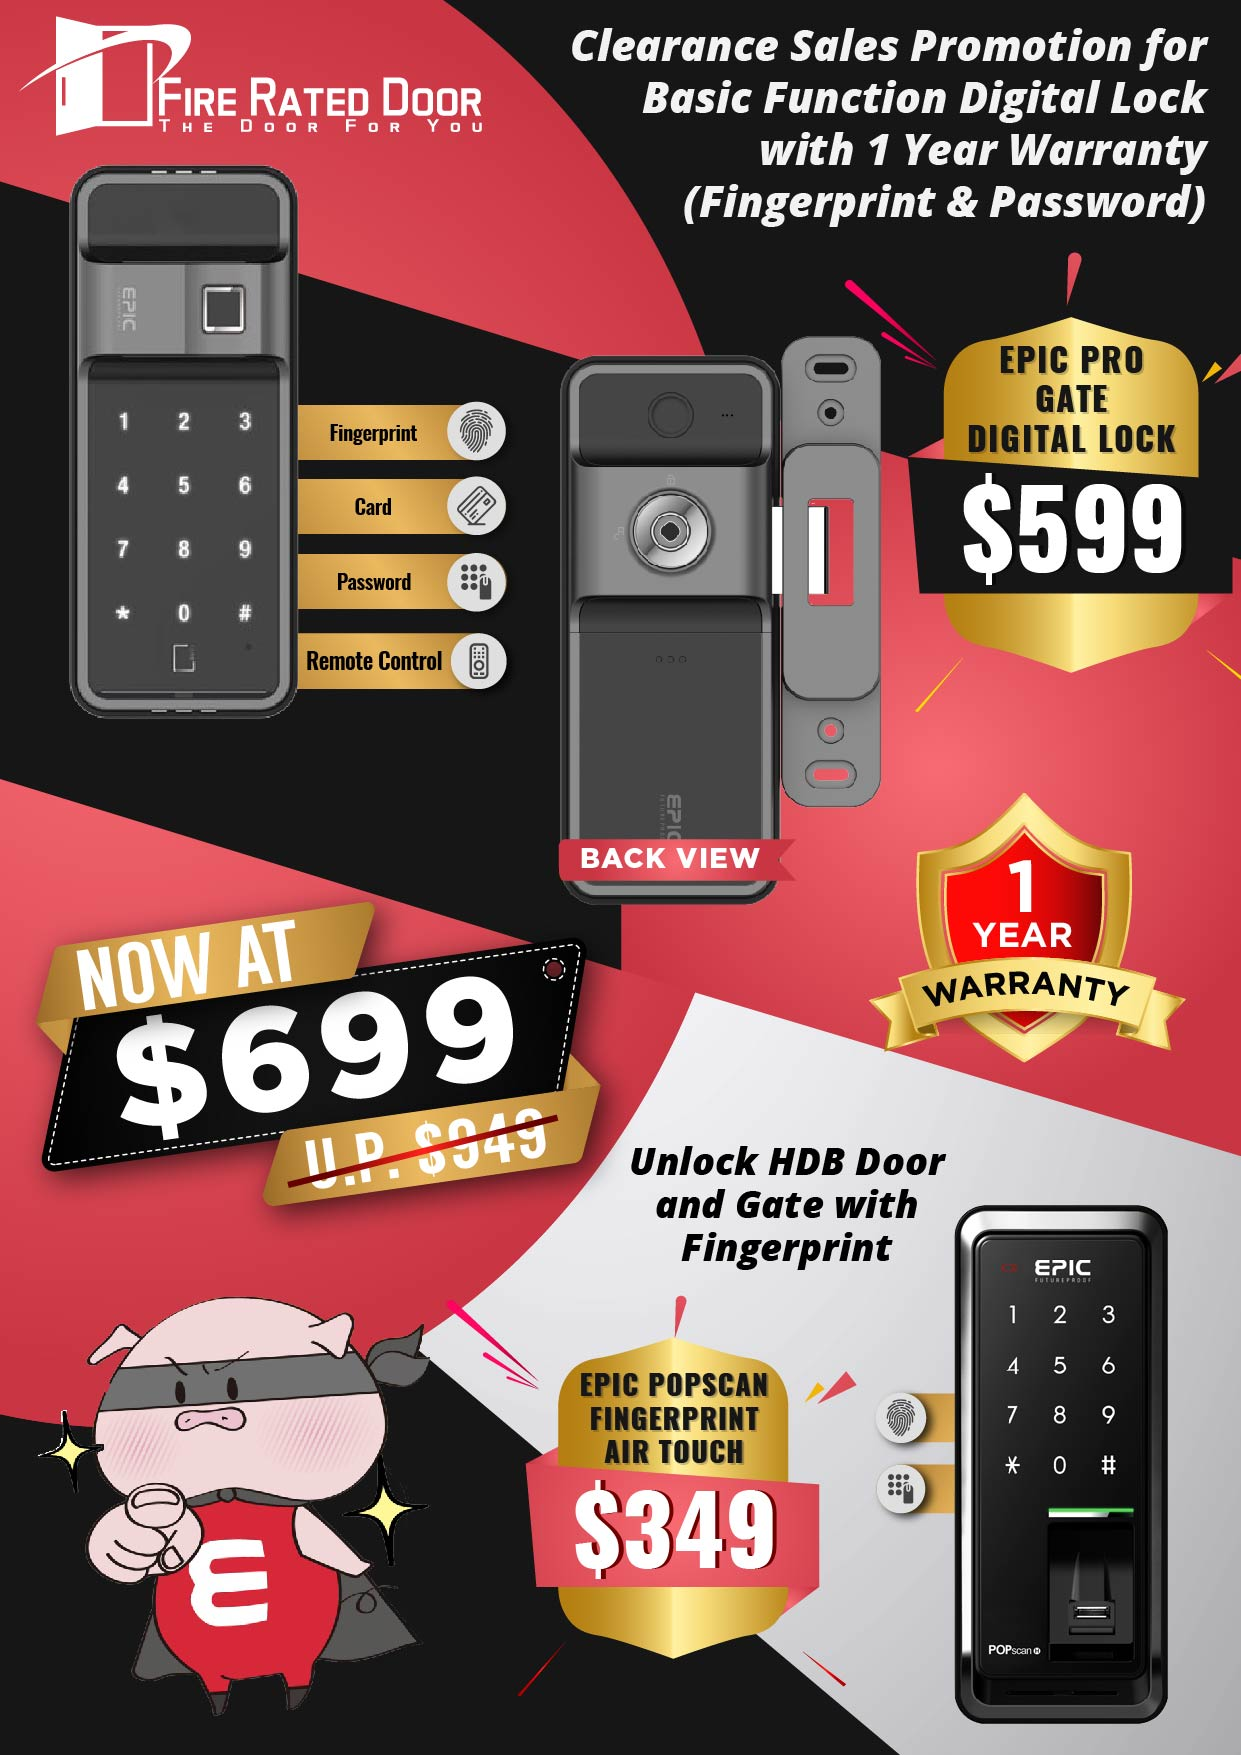 EPIC Clearance Sales Digital Lock